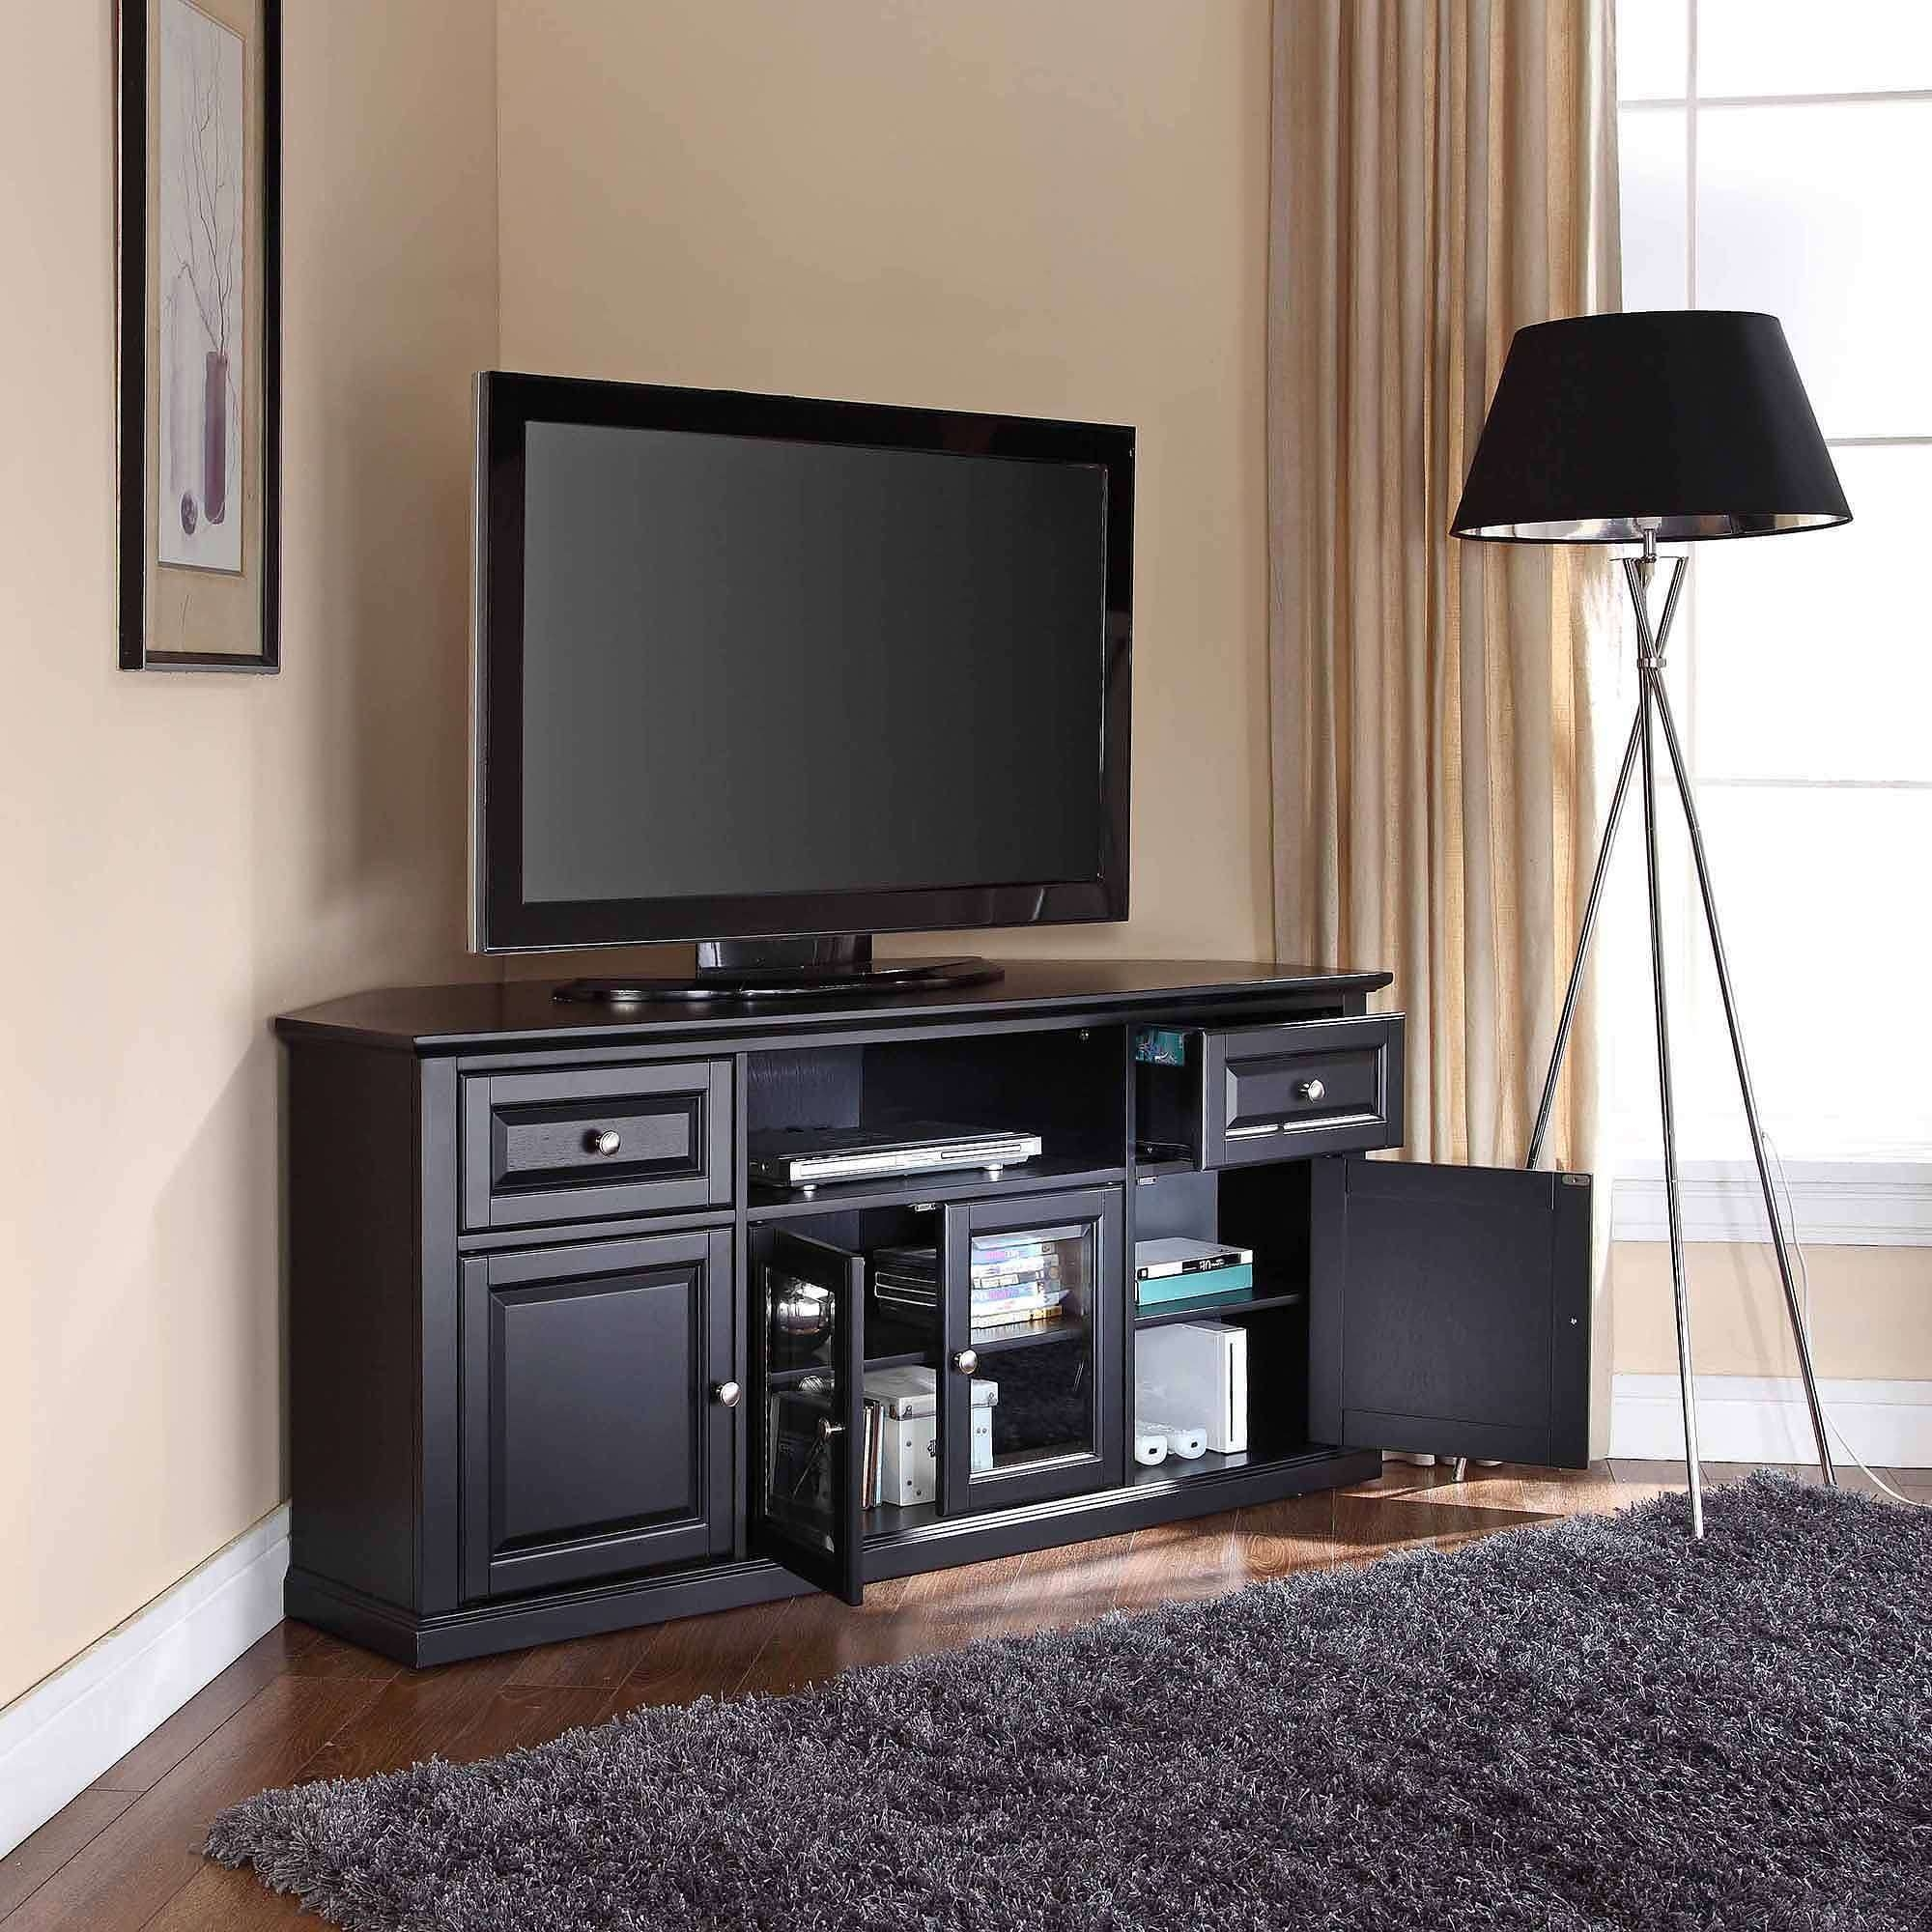 "Crosley Furniture Corner Tv Stand For Tvs Up To 60"" – Walmart Throughout Corner Tv Stands With Drawers (View 9 of 15)"